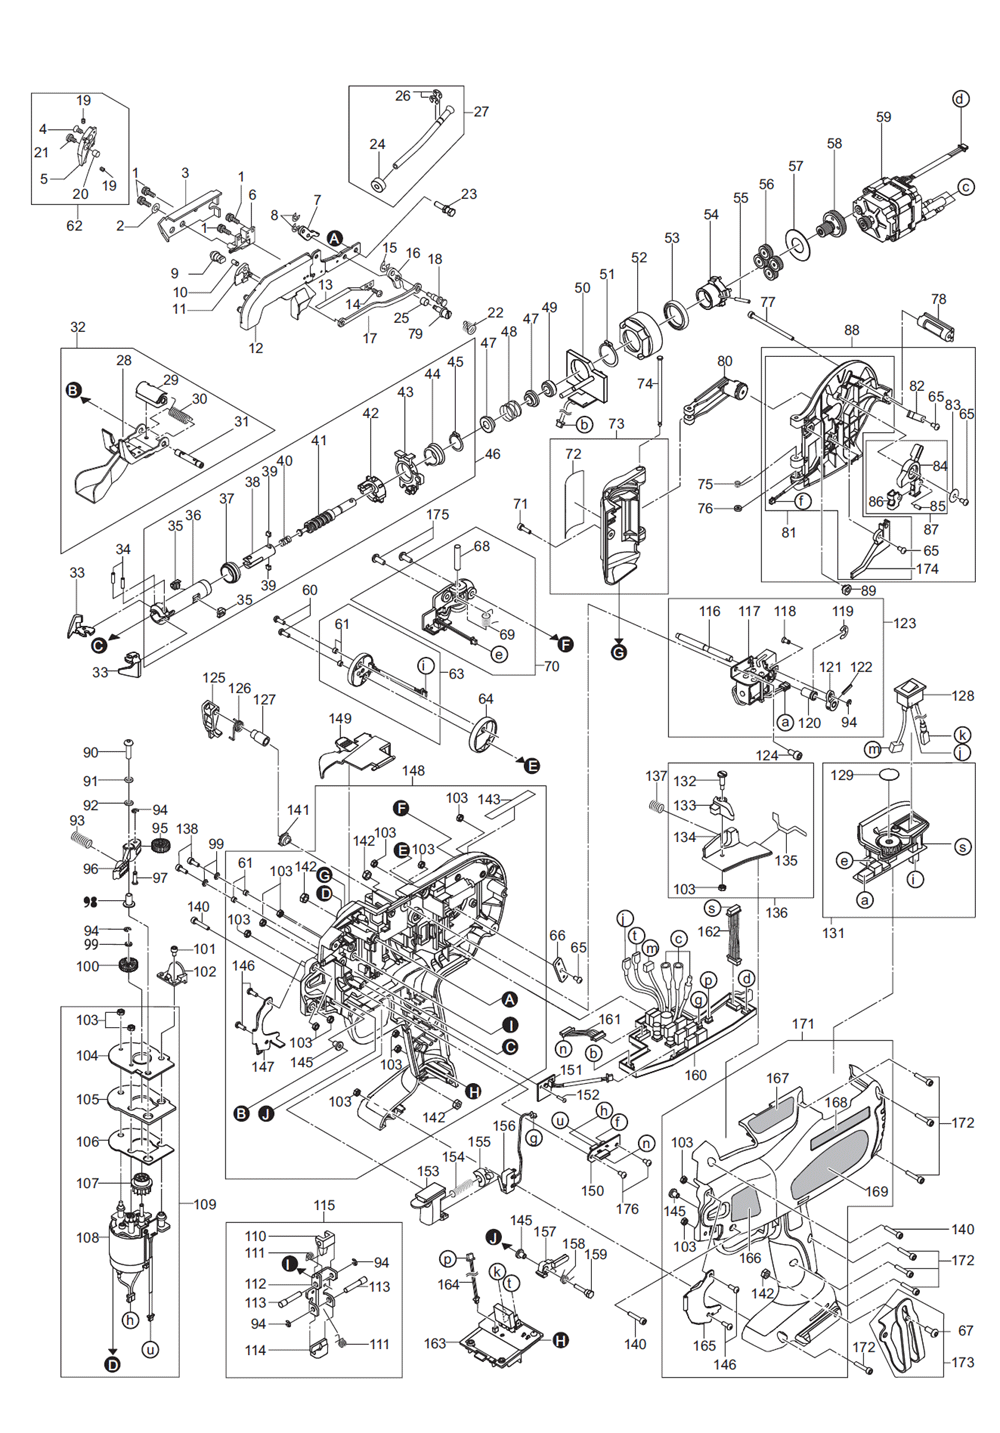 p b 58 20 118 wiring harness repair kit free download oasis dl co Wire Harness max rb517 parts list max rb517 repair parts oem parts with at p b 58 20 118